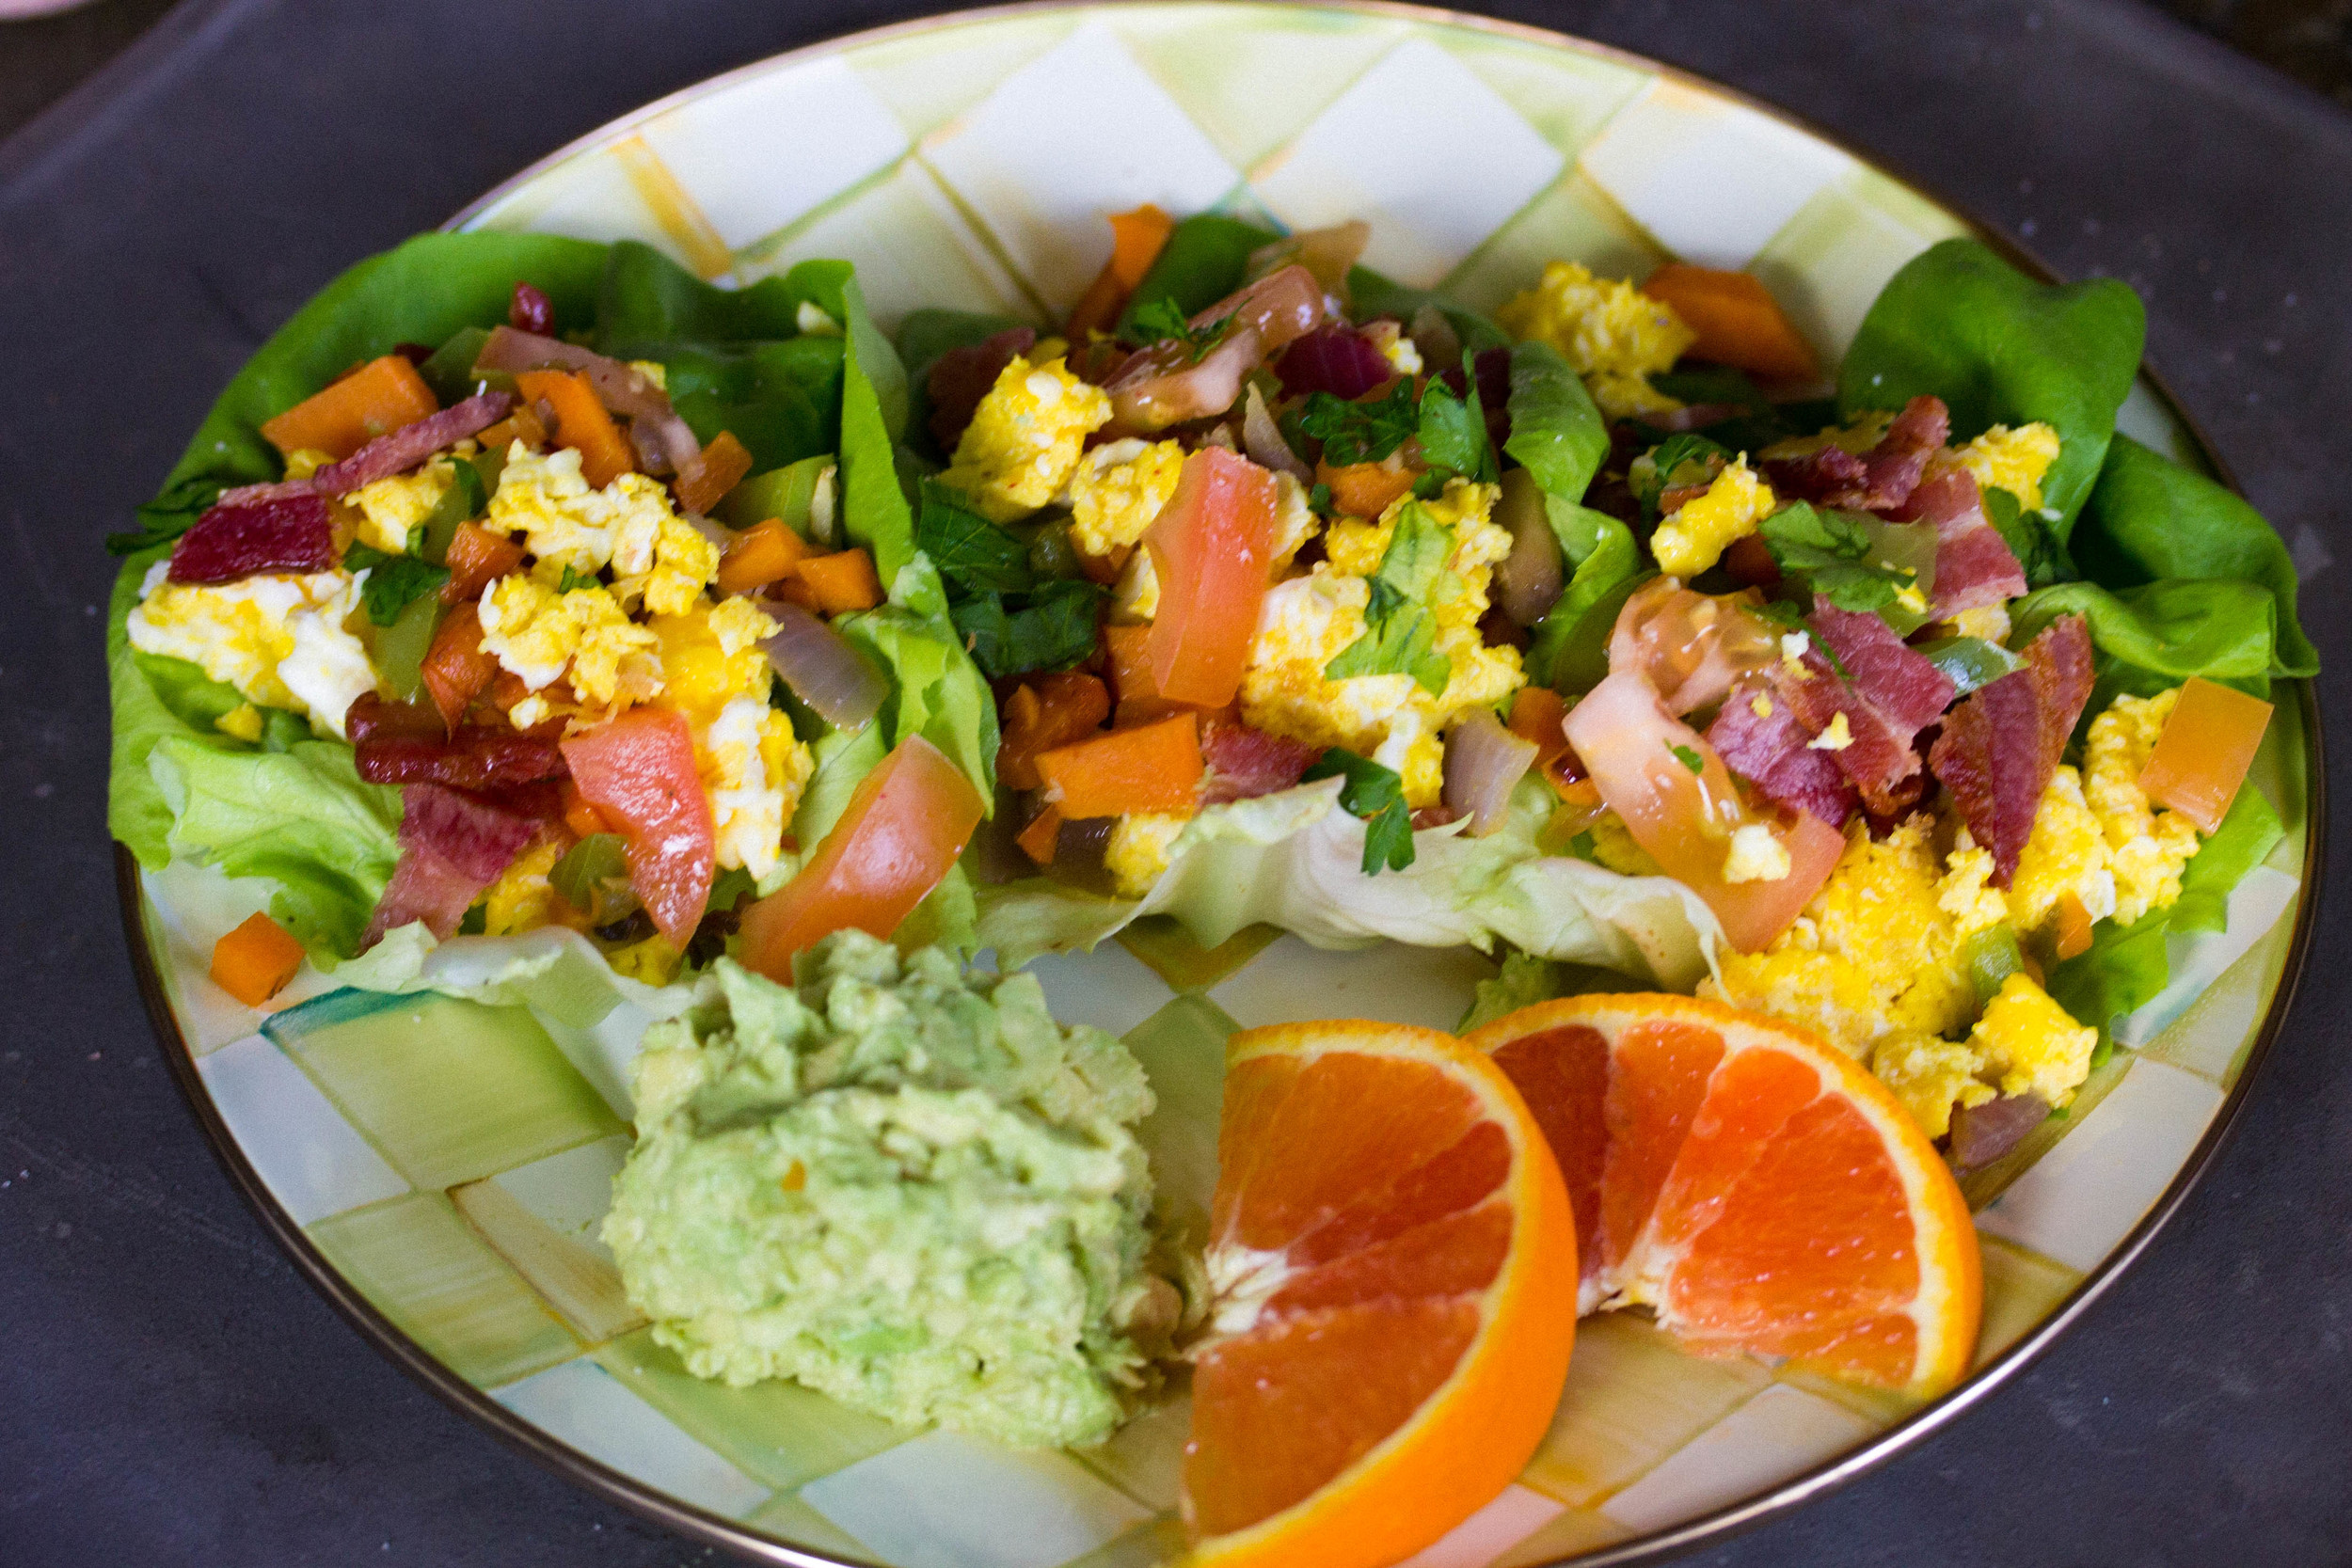 Serve with mashed avocados and oranges